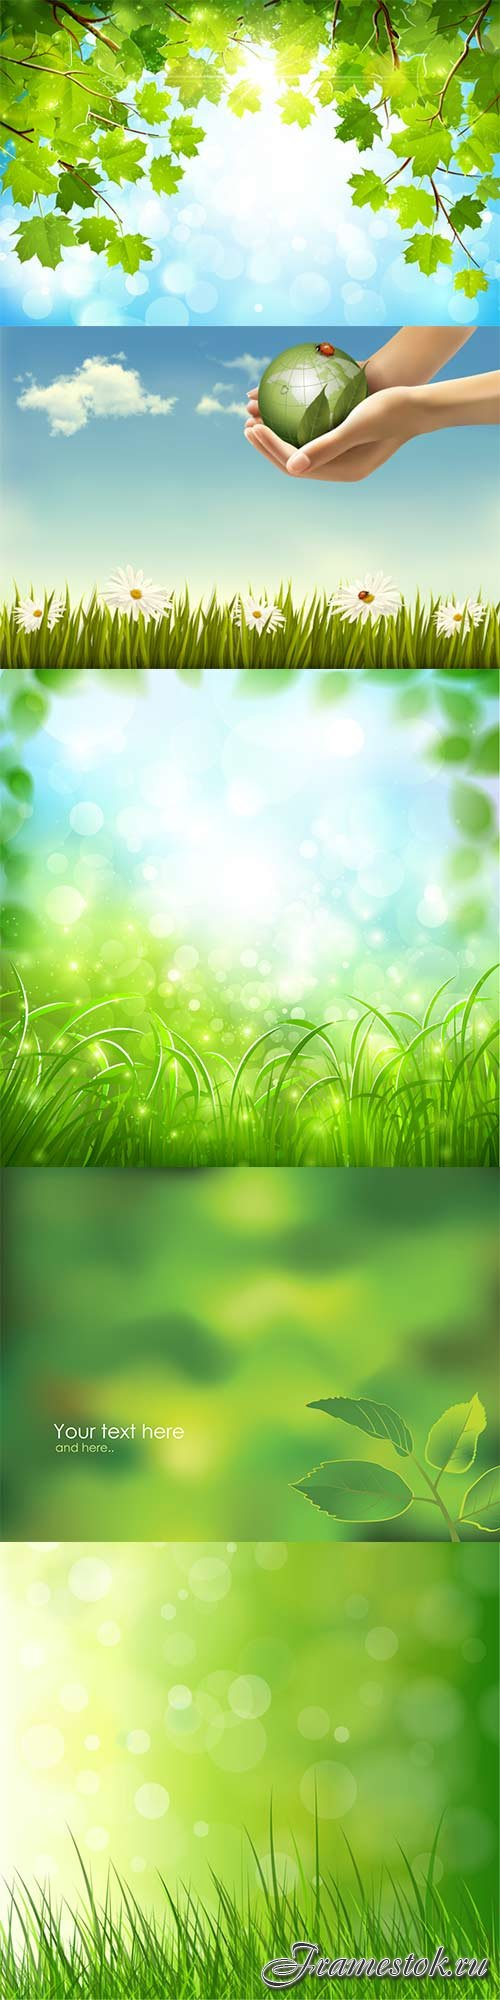 Spring backgrounds vector nature